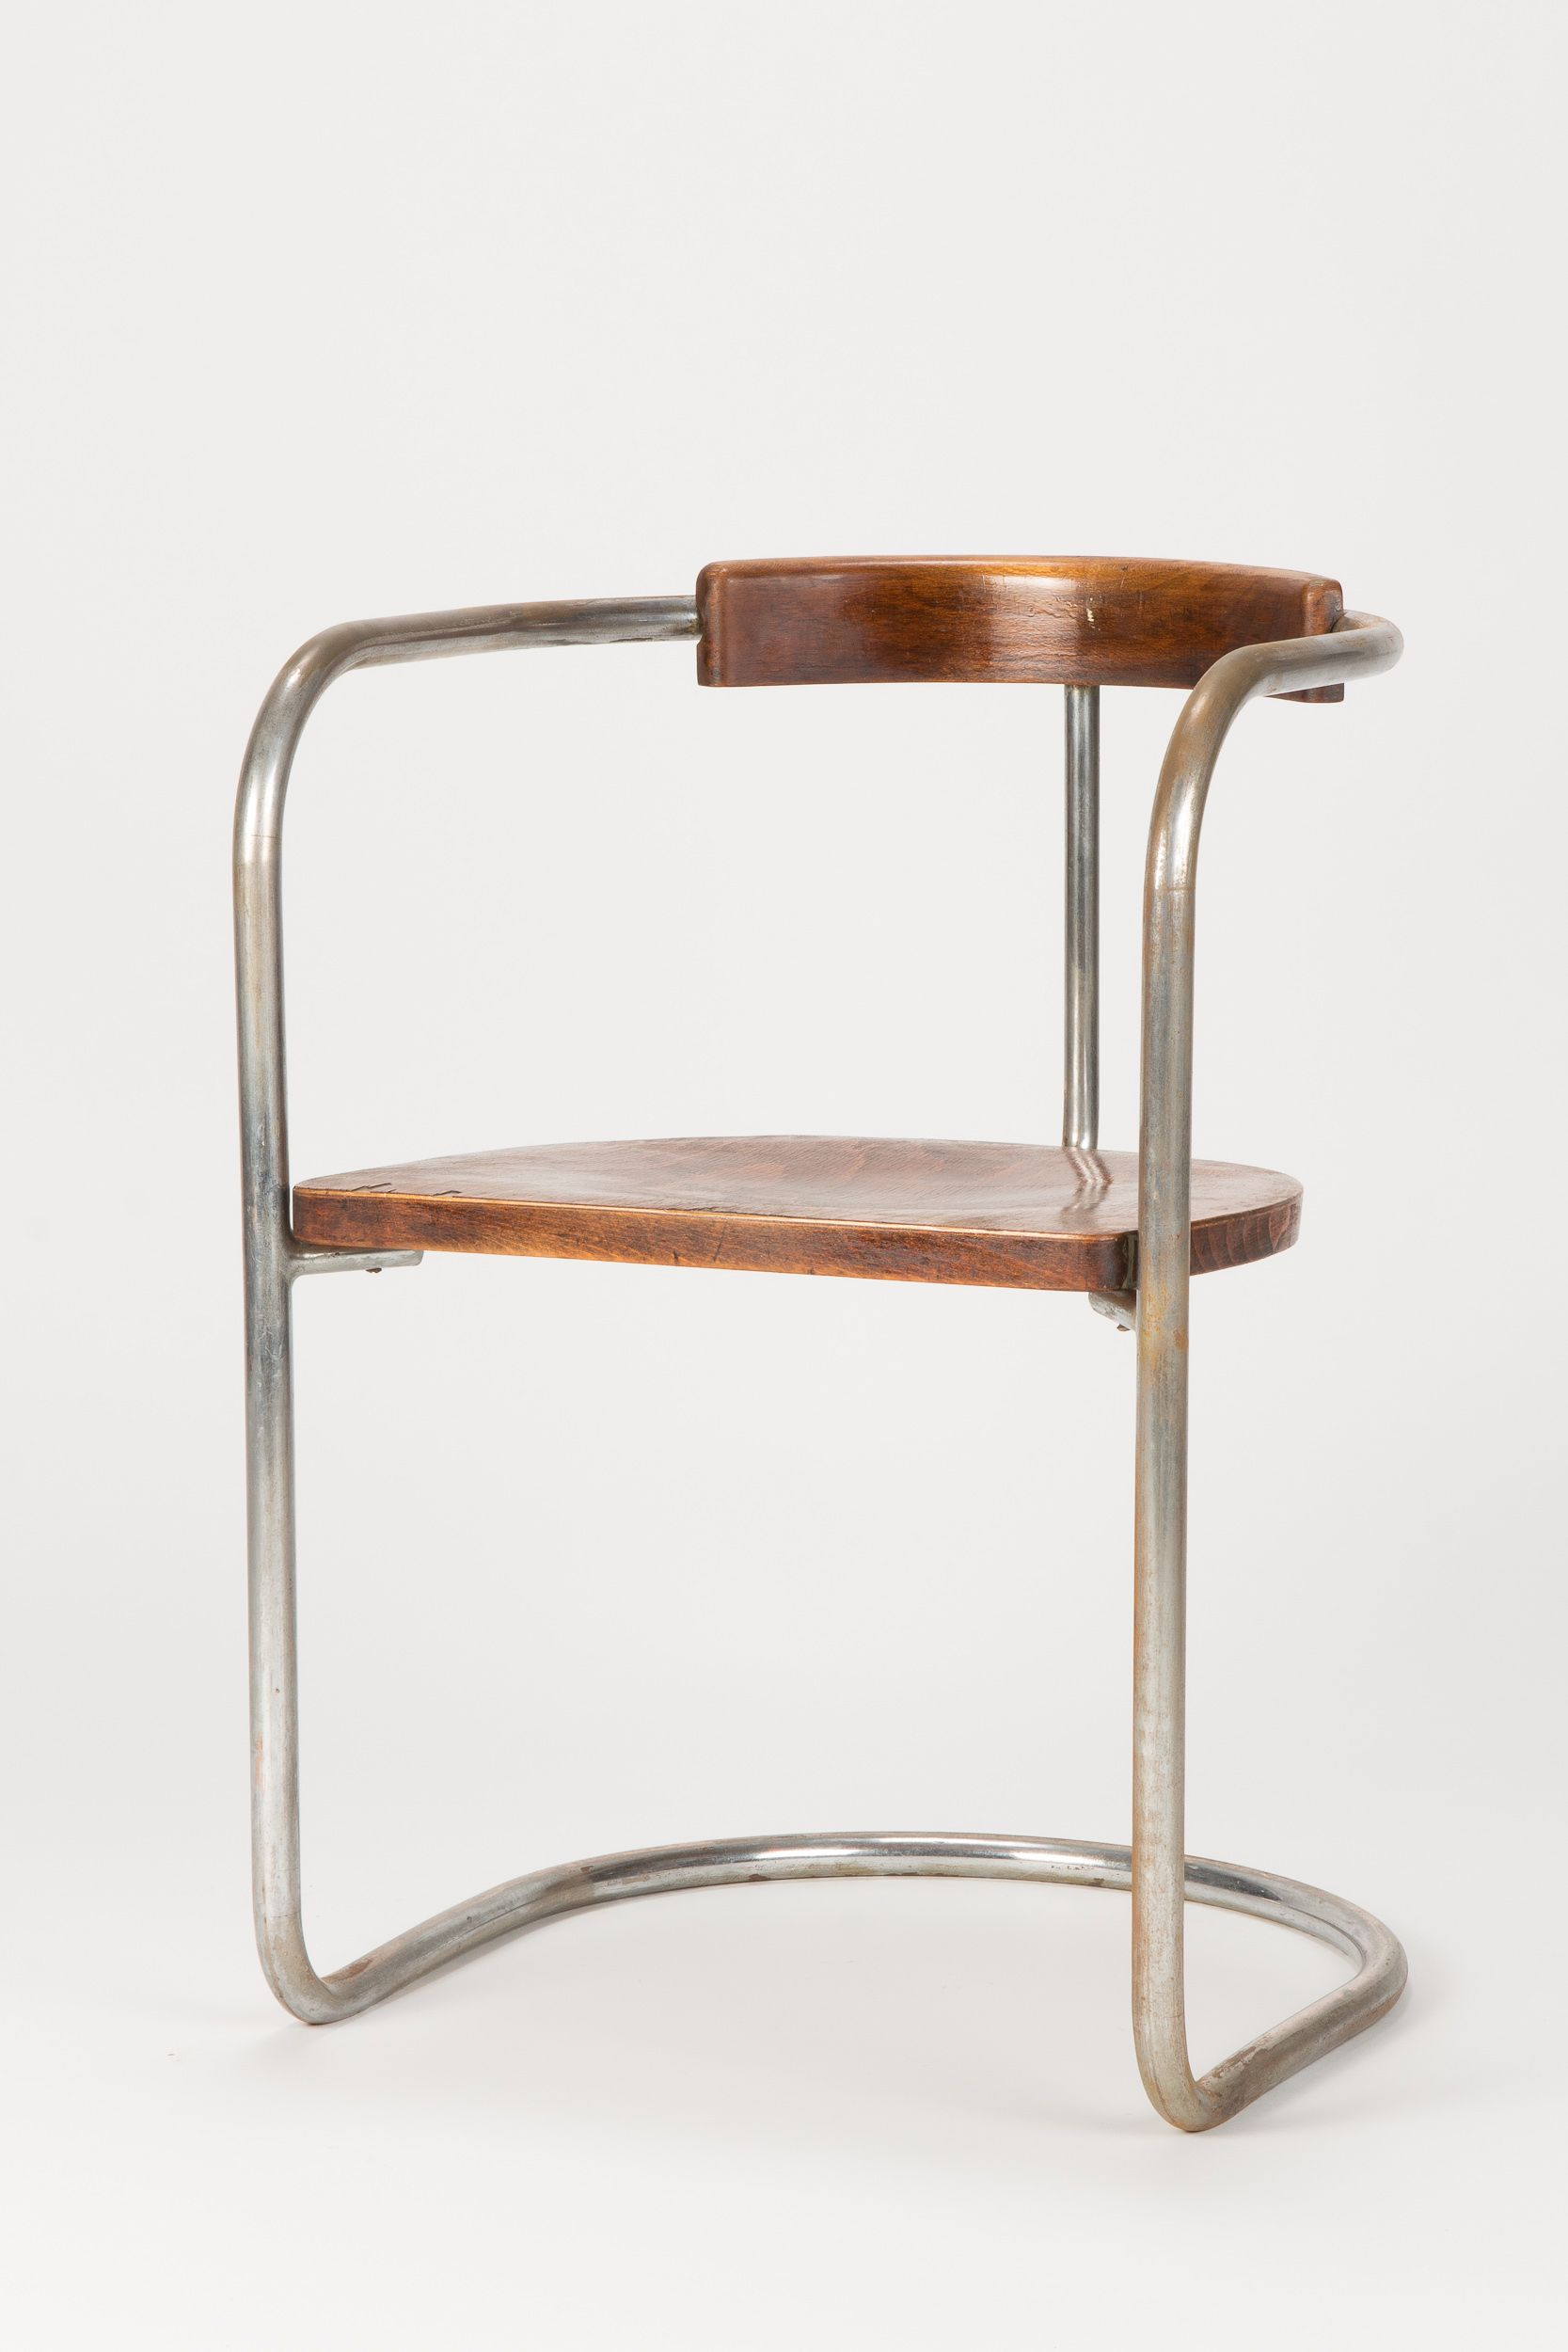 Bauhaus chair 1920 - Unique Bauhaus Cantilever Chair Made In Italy In The 1930s In A Very Nice Vintage